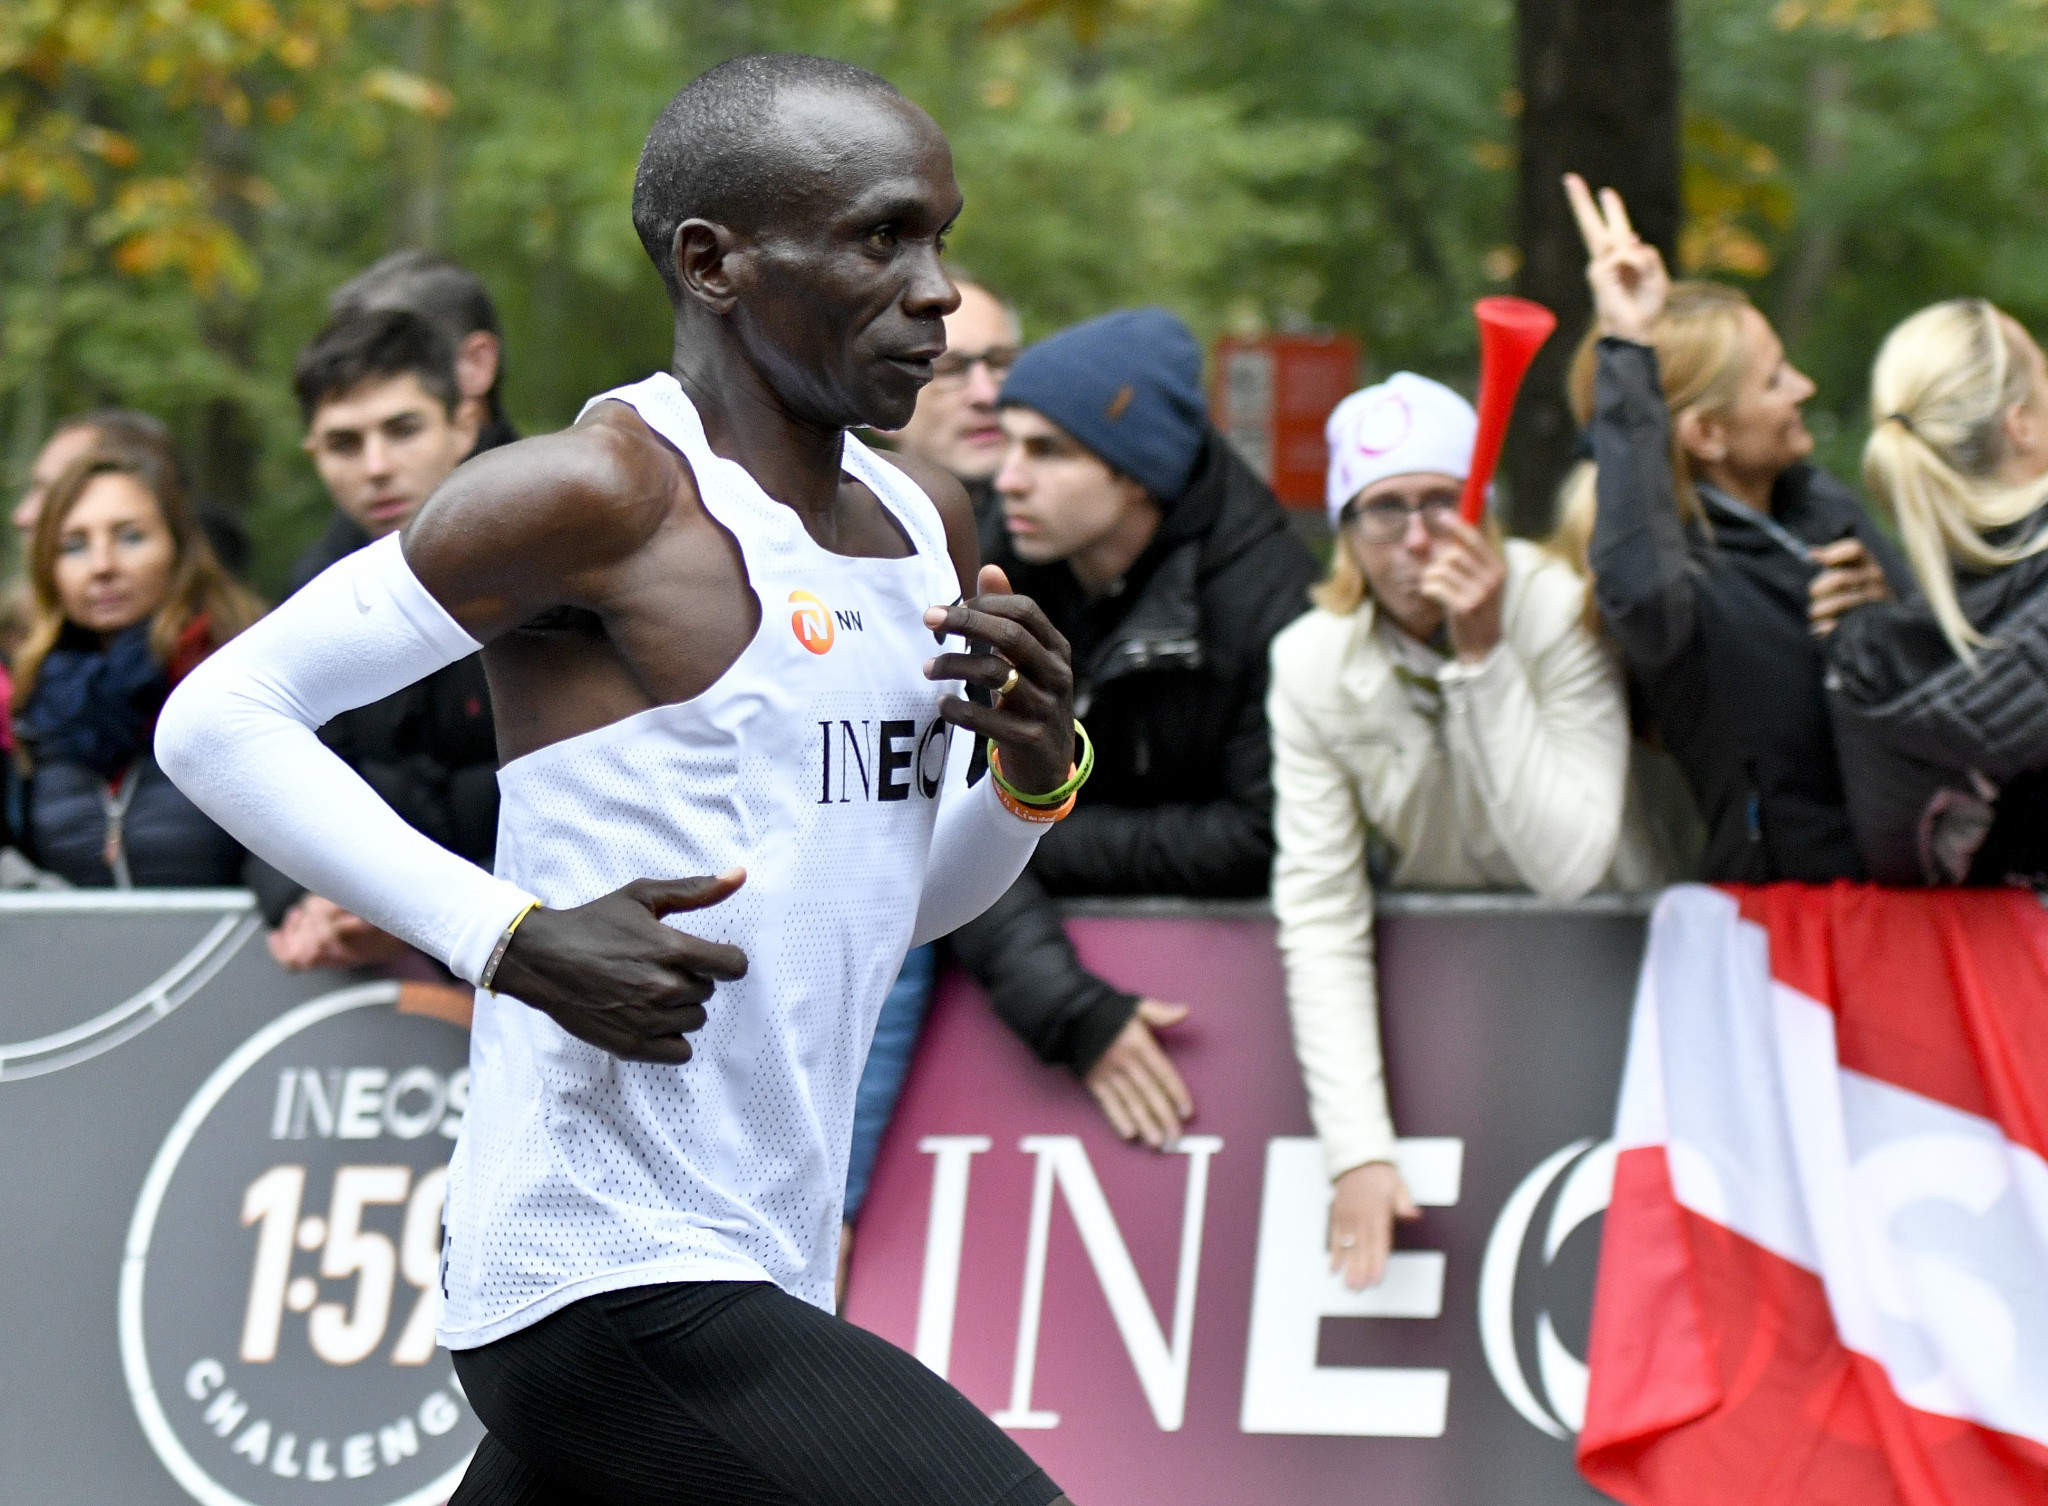 Kipchoge smashes two-hour barrier for marathon in Vienna